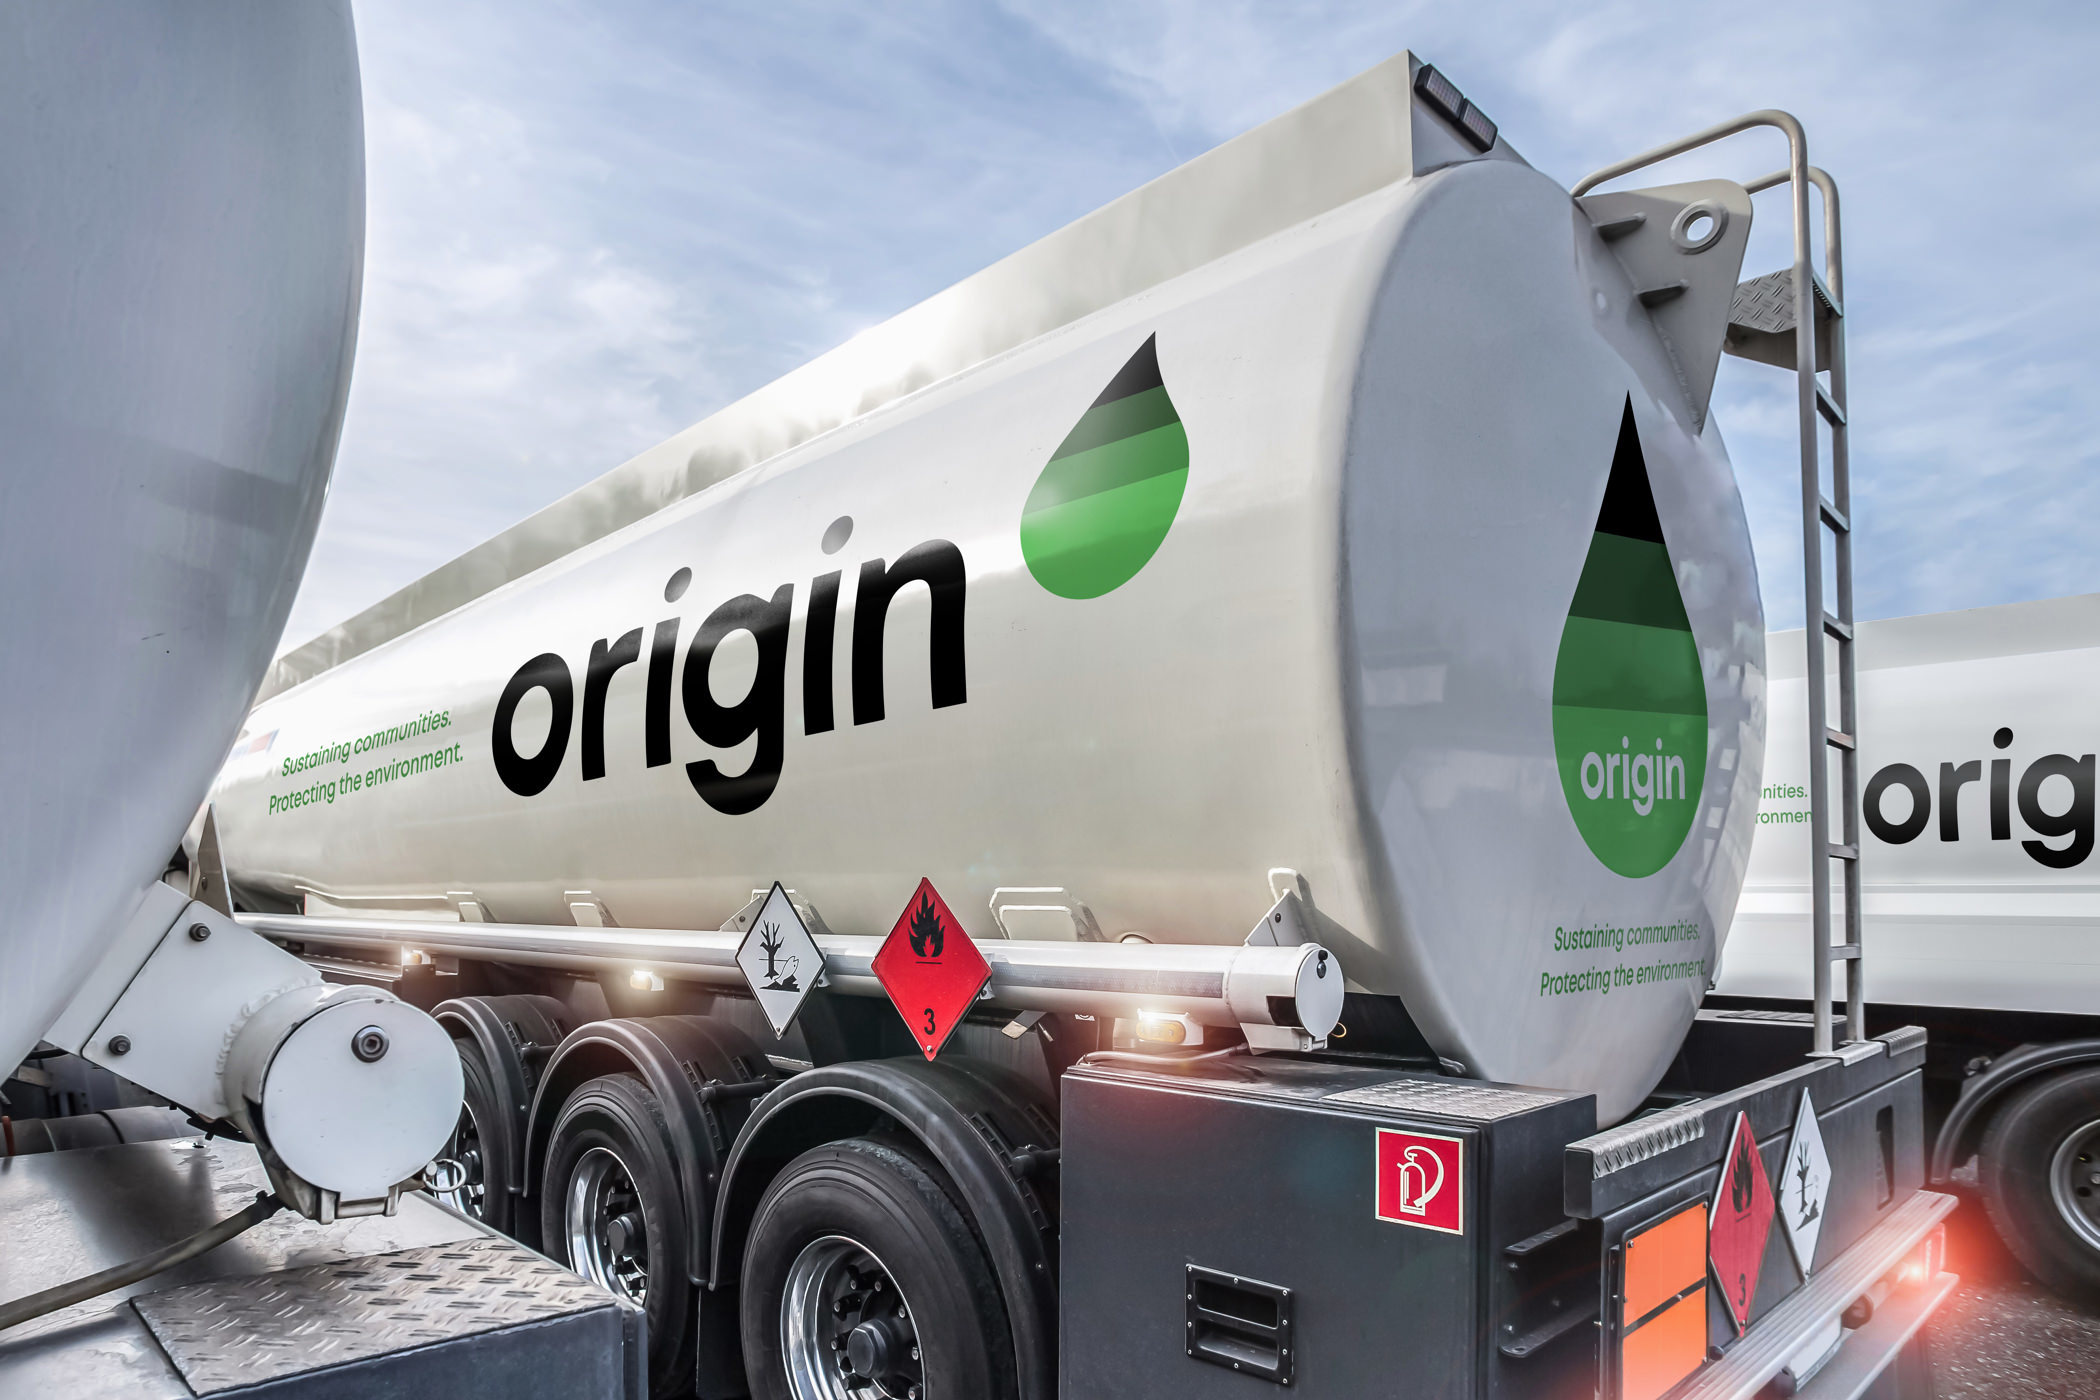 The Origin International logotype and green-gradient droplet symbol painted on a white tanker truck trailer.